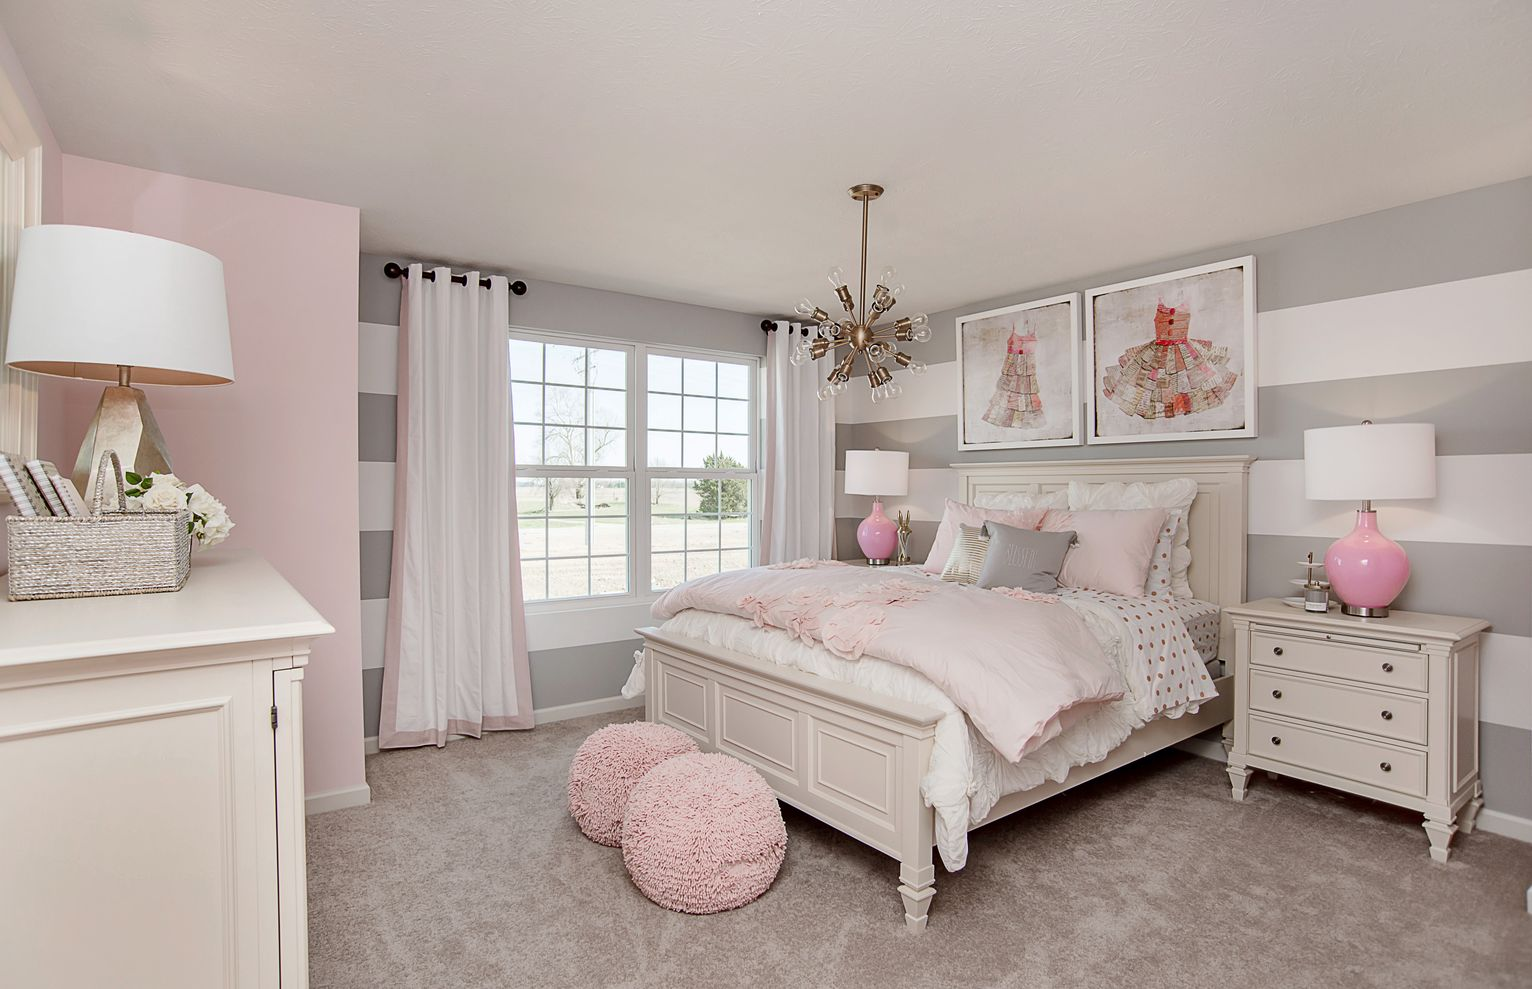 Cute apartment bedroom ideas you will love 48